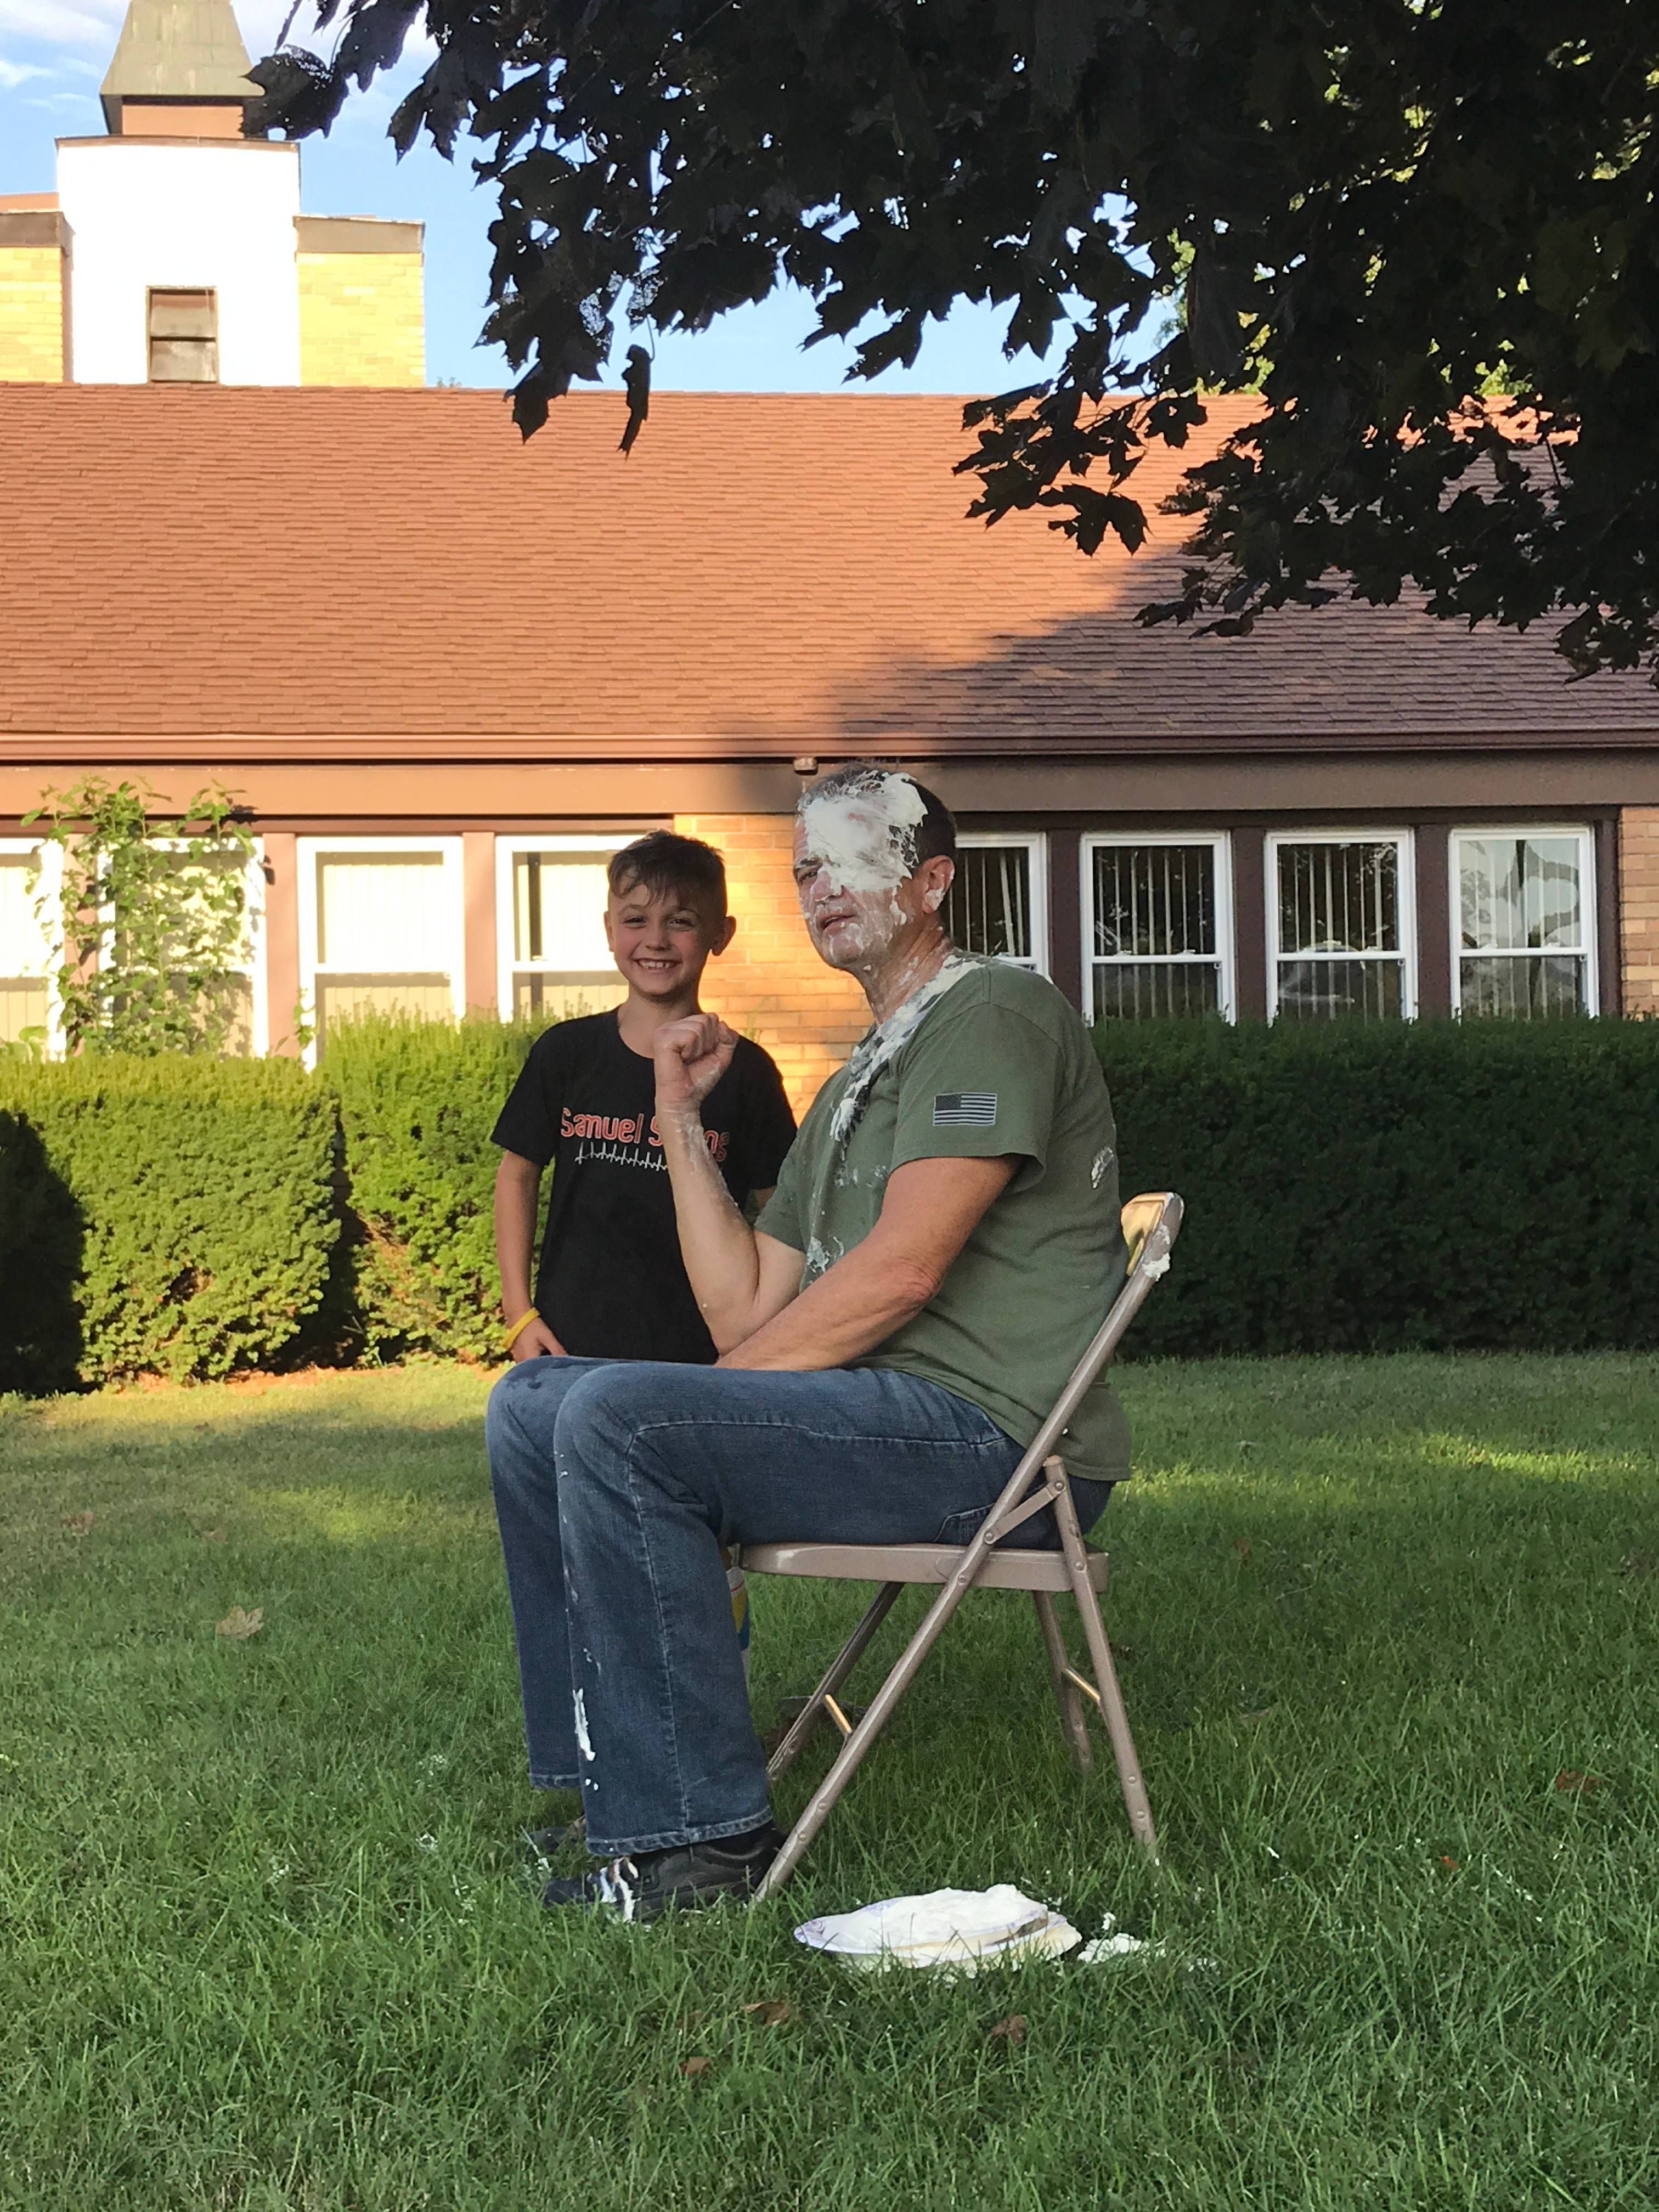 Pastor Dave Gets a Pie in the Face